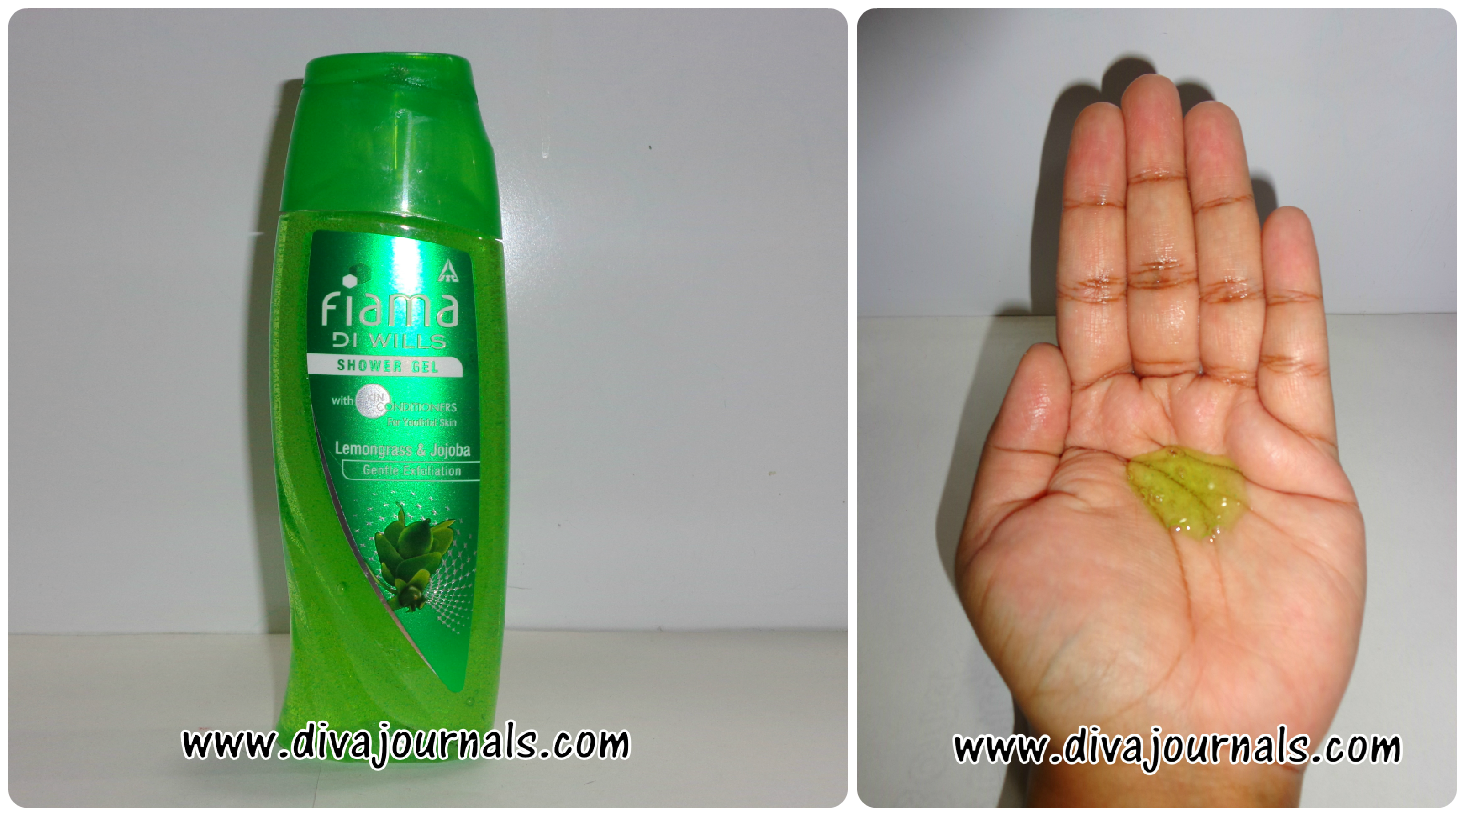 Fiama Di Wills Shower Gel - Exfoliating Beads for Revitalizing Care (Green Bottle)